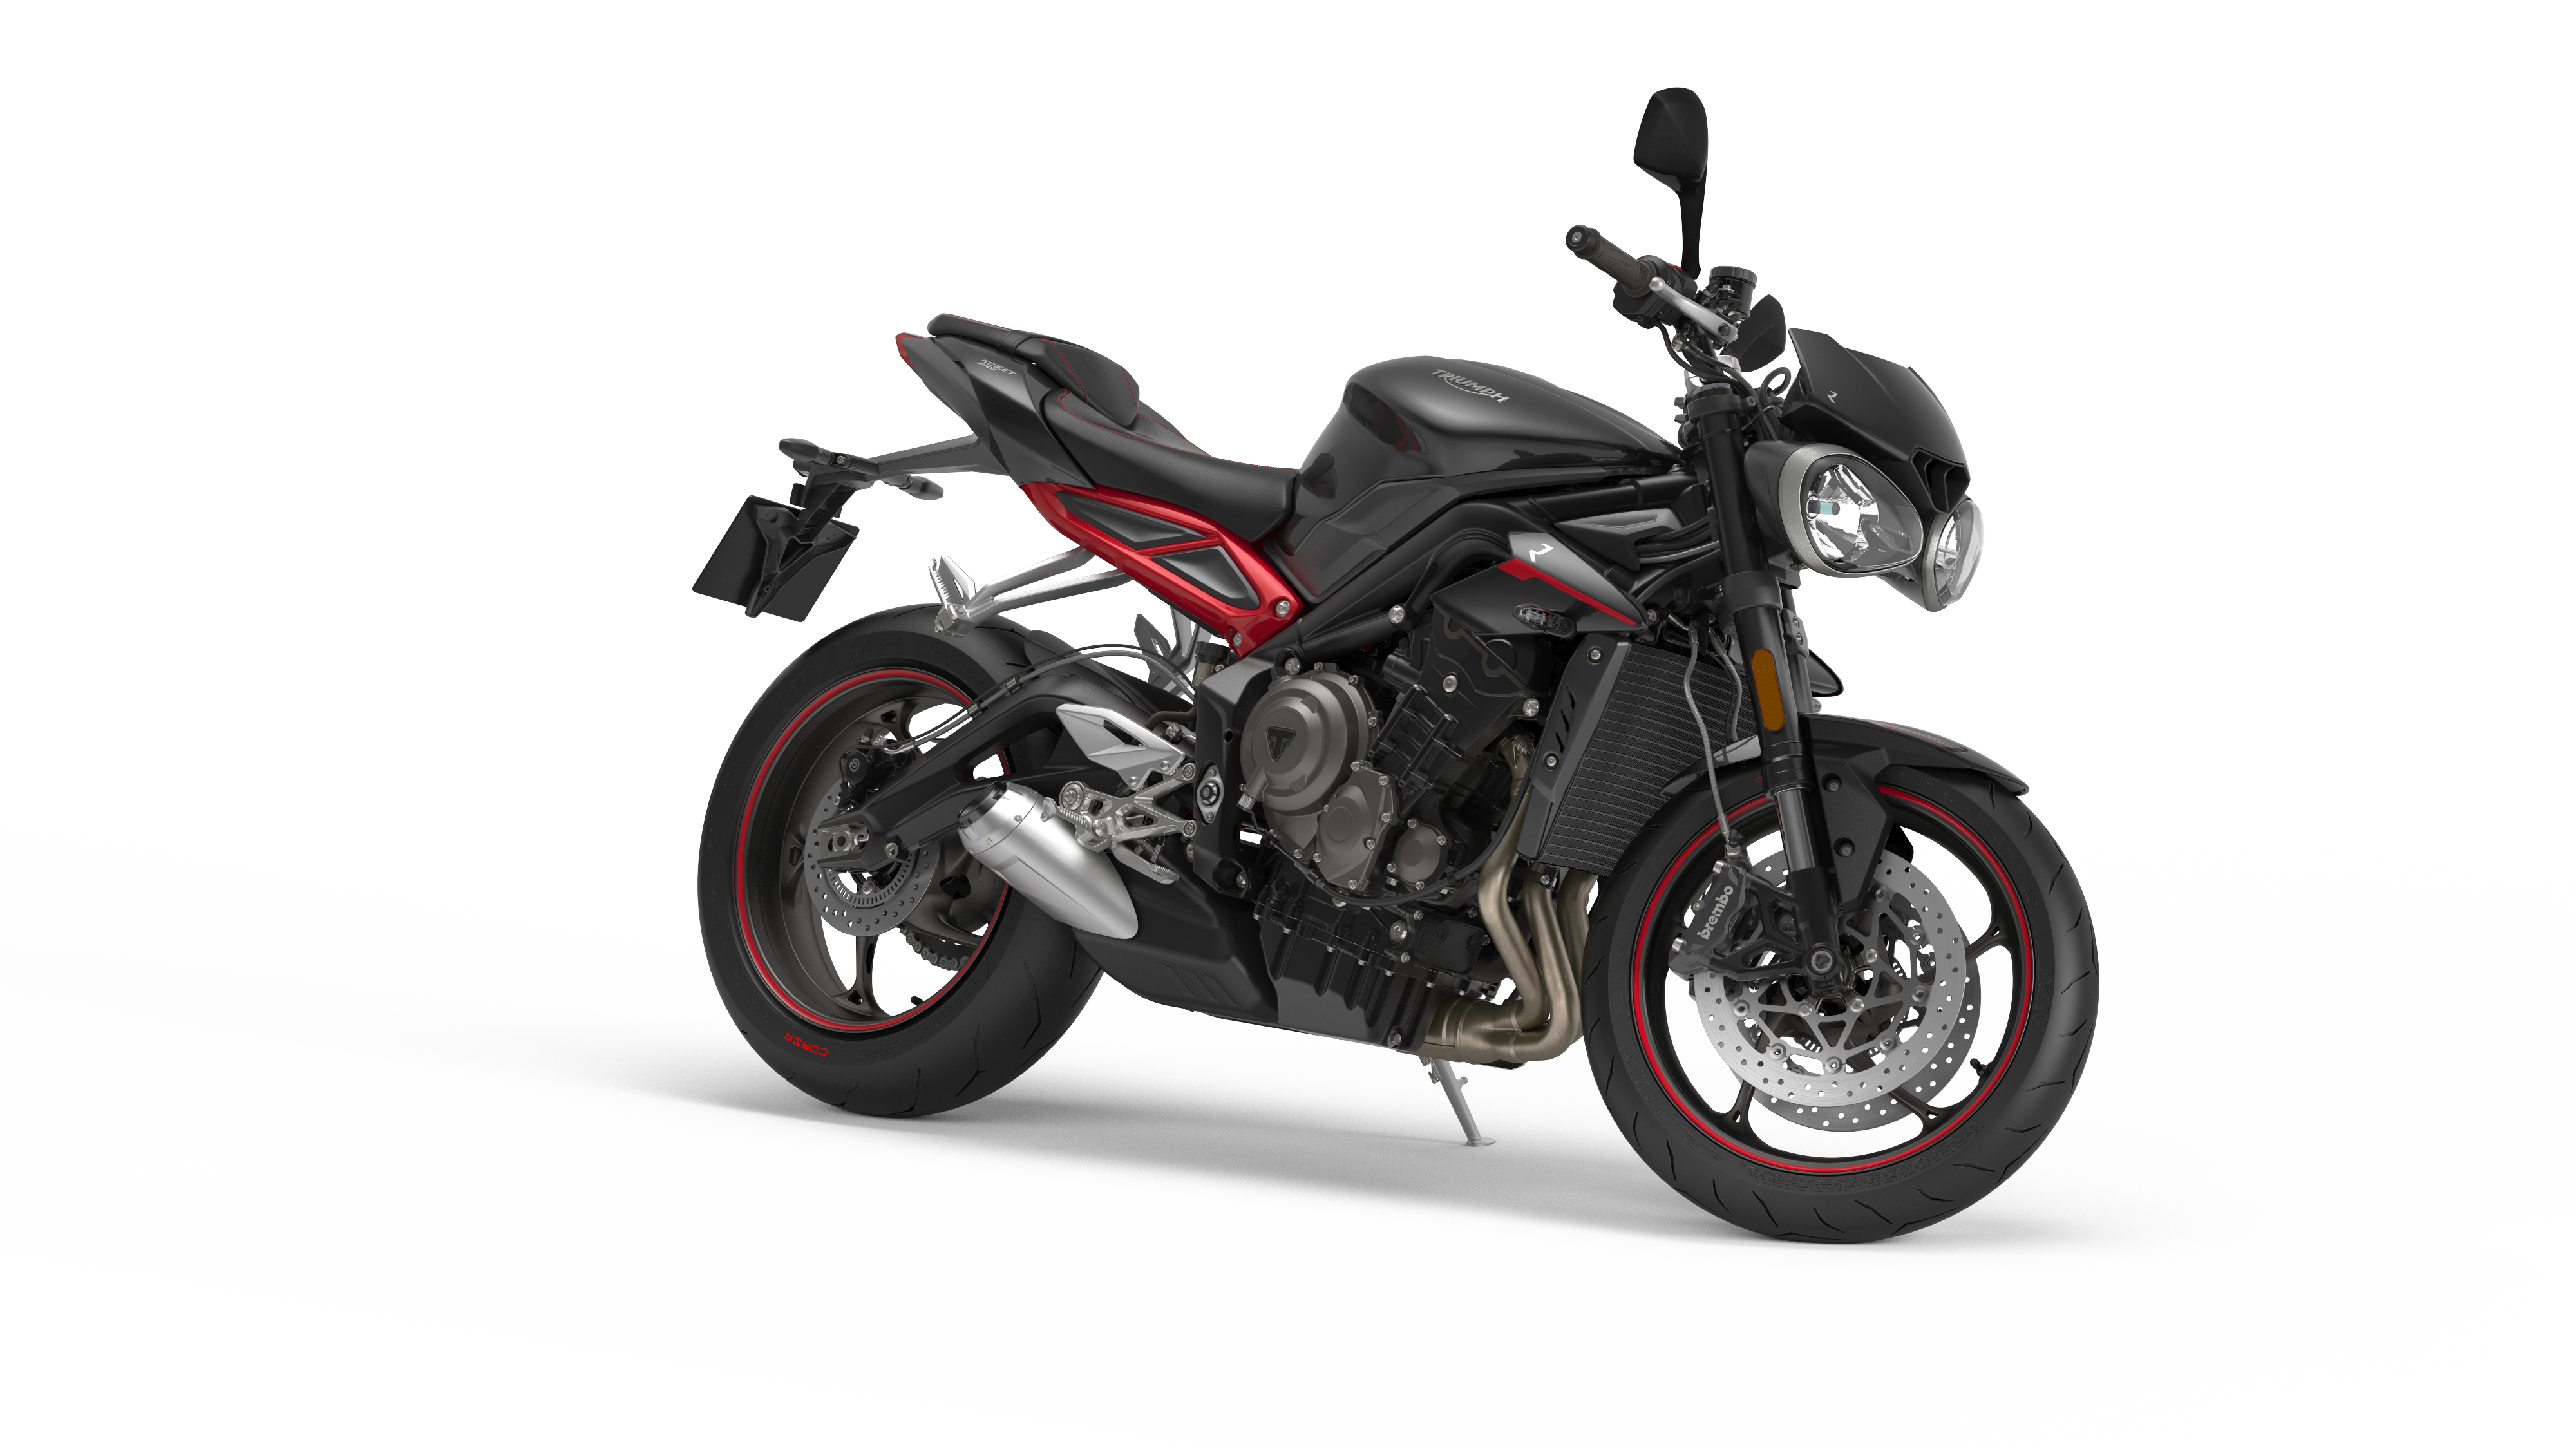 Triumph Motorcycles Malaysia Releases New Prices For 2017